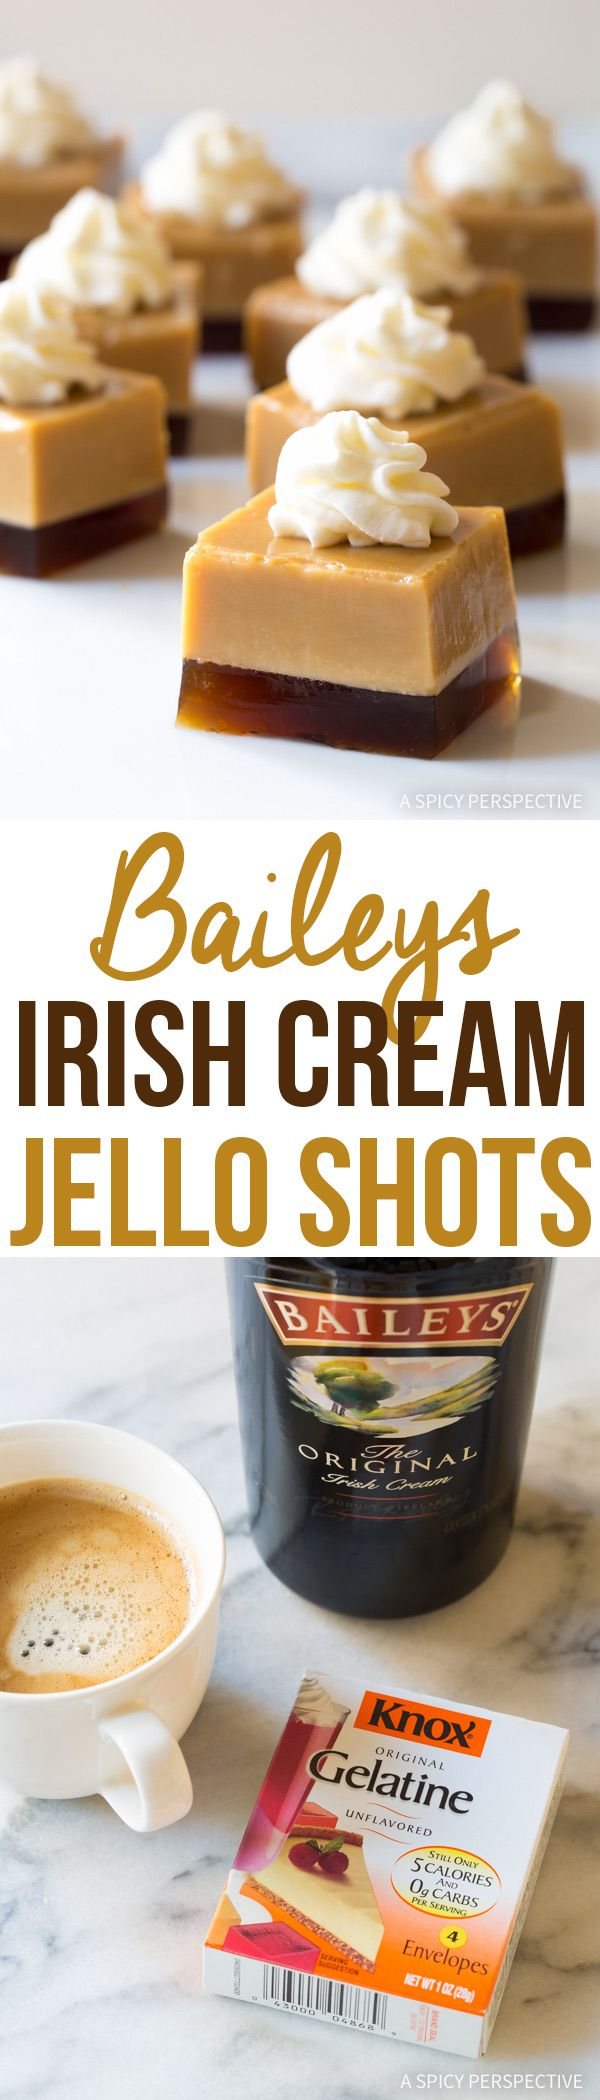 Fun 5-Ingredient Baileys Irish Cream Jello Shots Recipe #SaintPatricksDay via @spicyperspectiv